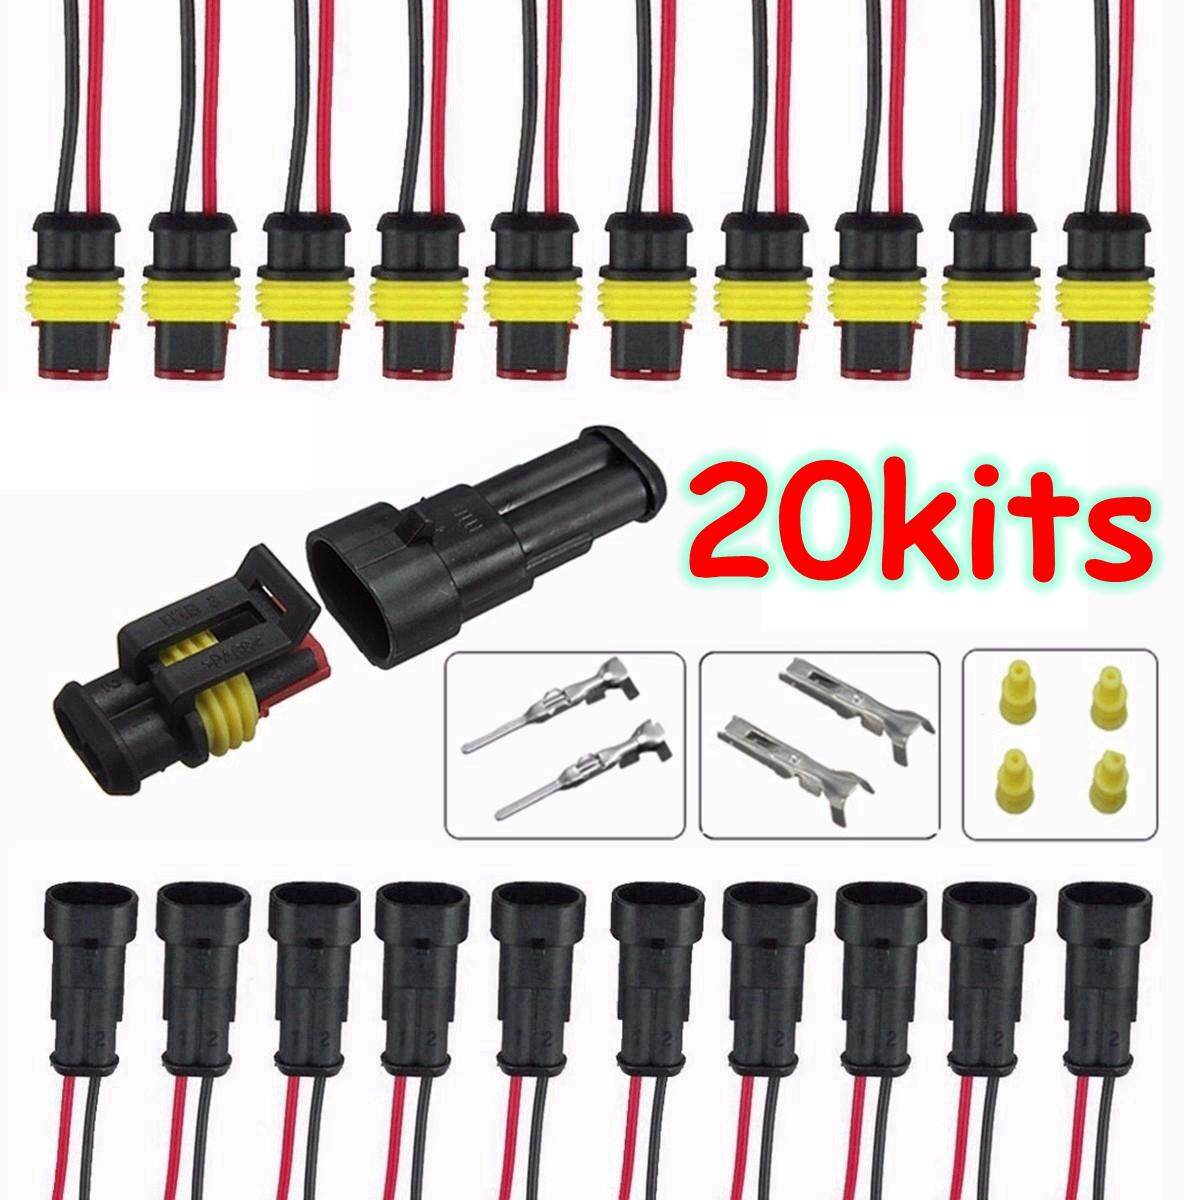 Car Sockets For Sale Pigtail Online Brands Prices Reviews Vw Wiring Harness Terminals 20 Sets Part 2 Pin Way Sealed Waterproof Electrical Wire Auto Connector Plug Set